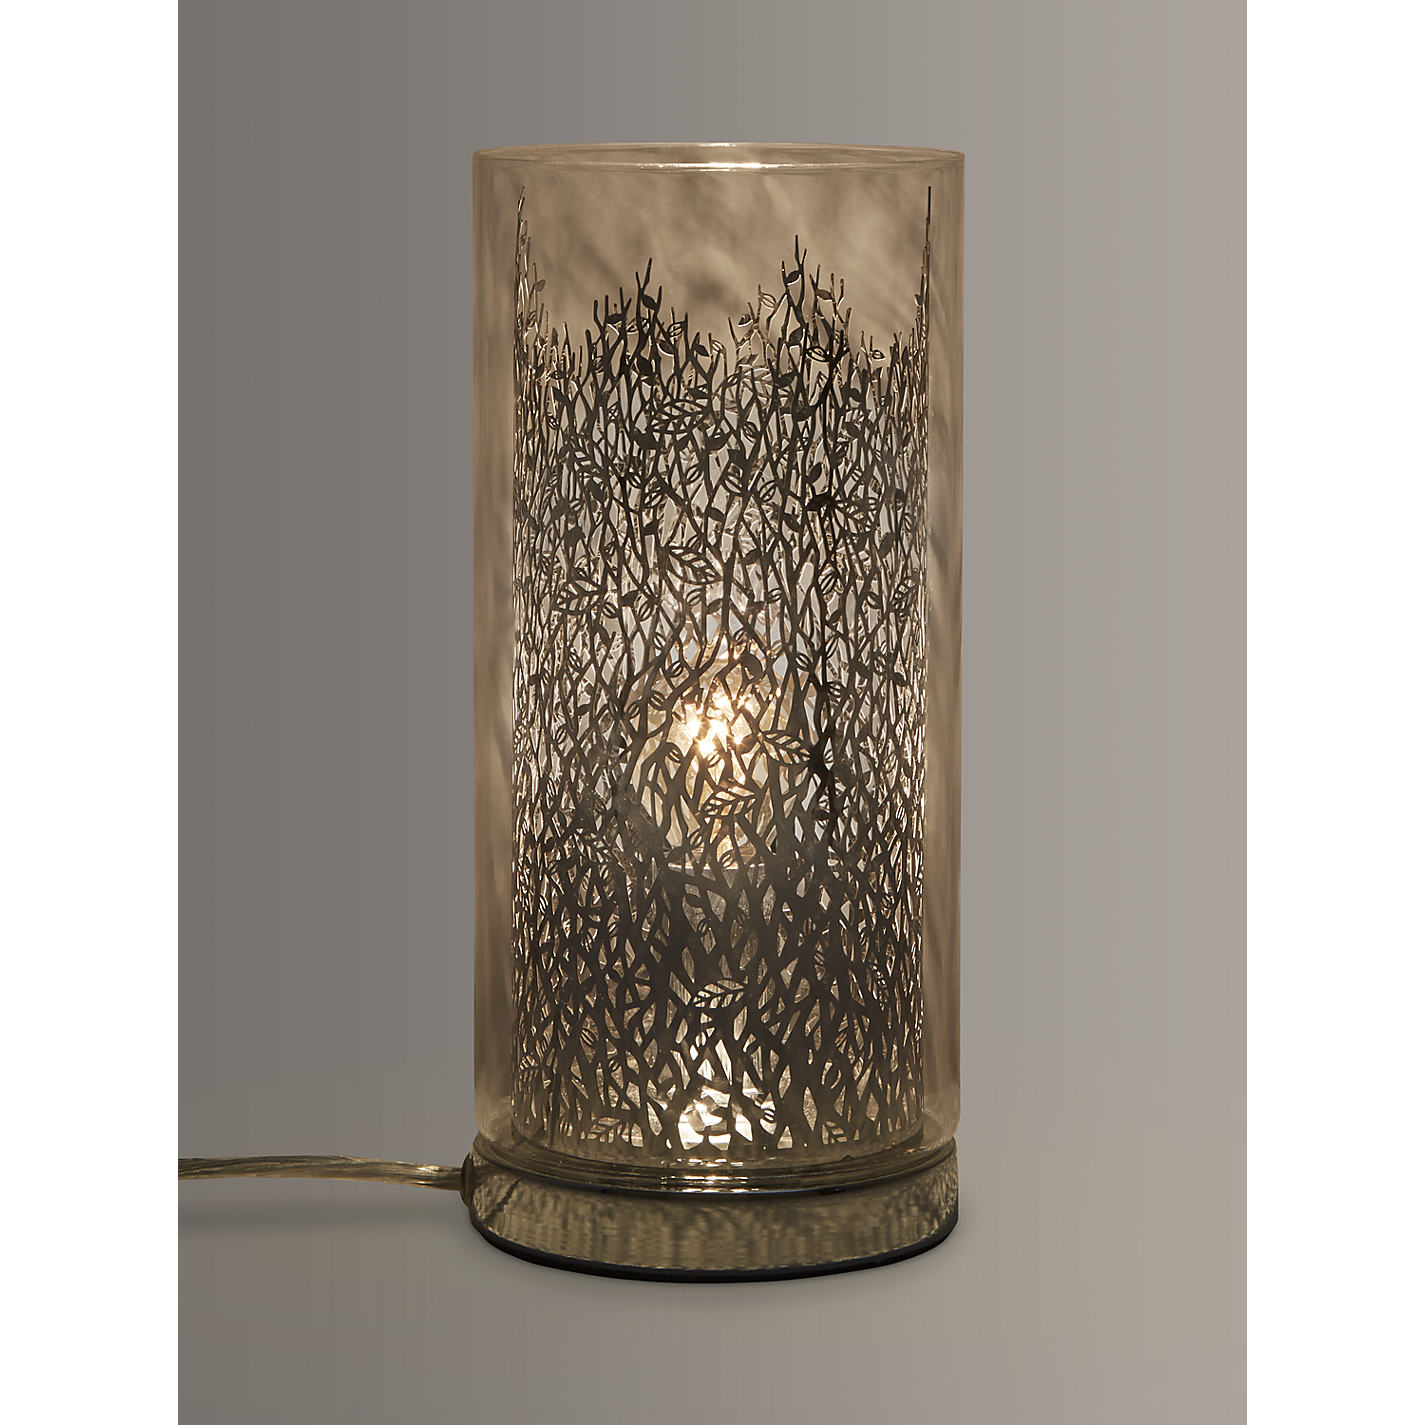 Buy john lewis blakeley clear glass metal touch table lamp buy john lewis blakeley clear glass metal touch table lamp clear online at johnlewis geotapseo Image collections